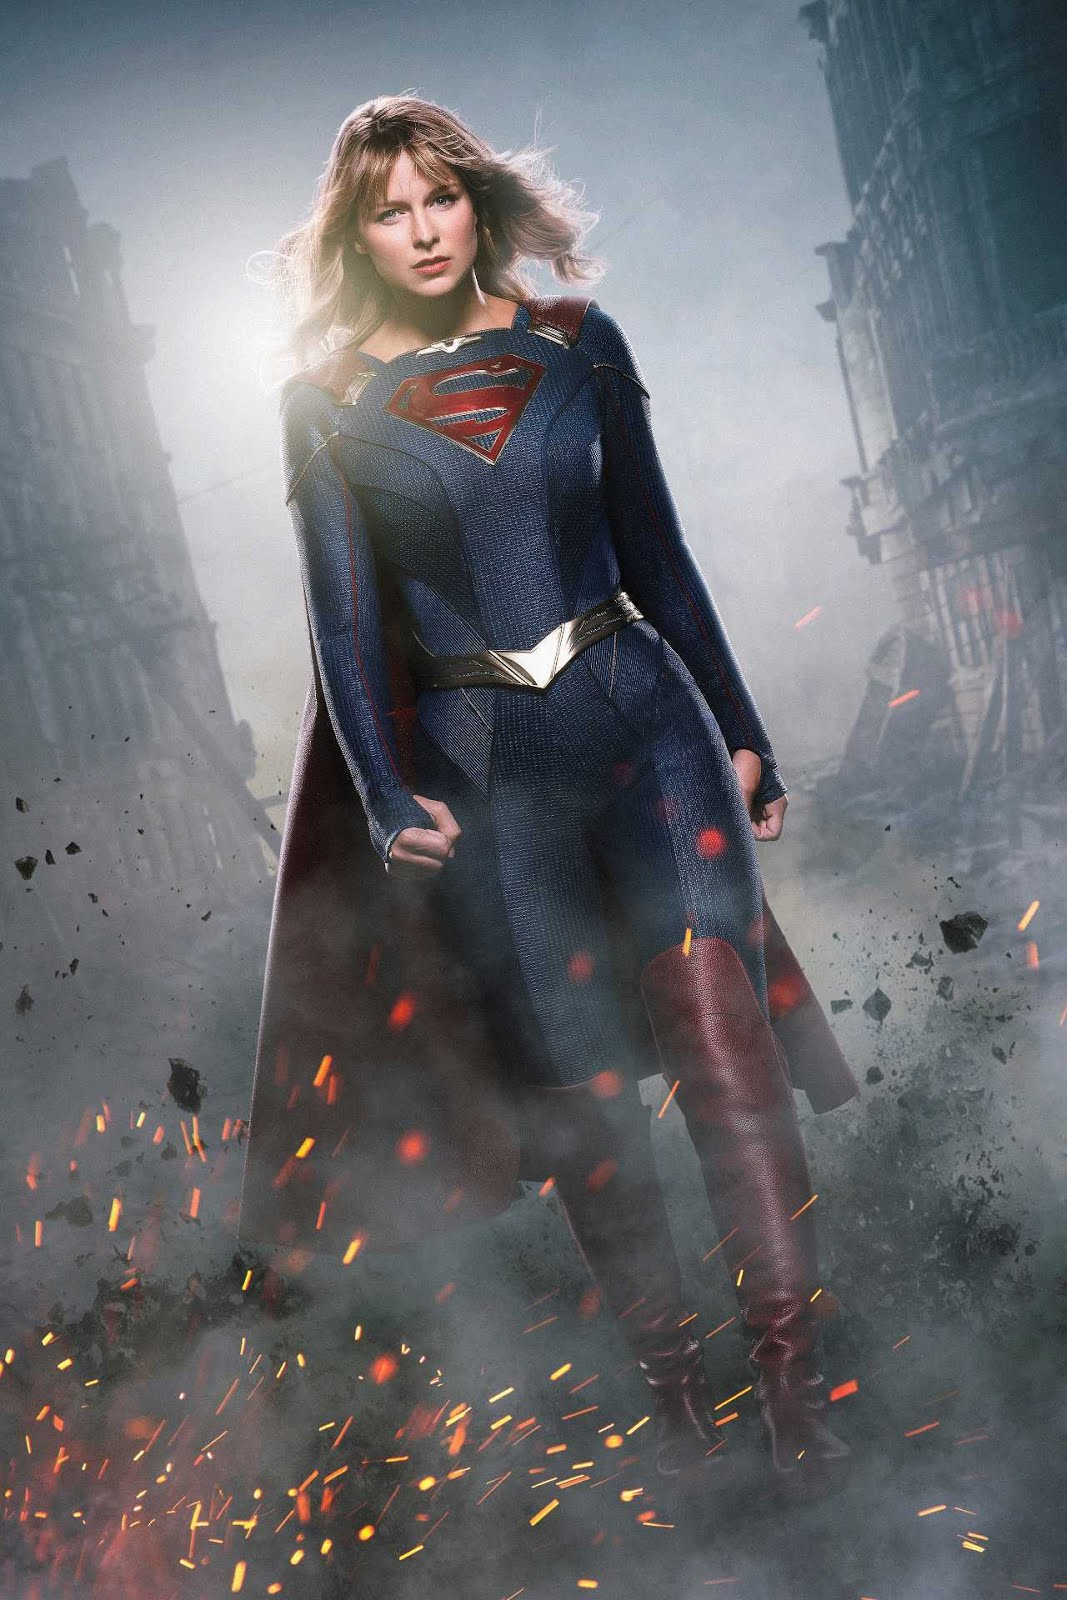 Supergirl S05E03 300MB HDTV 720p x264 Download